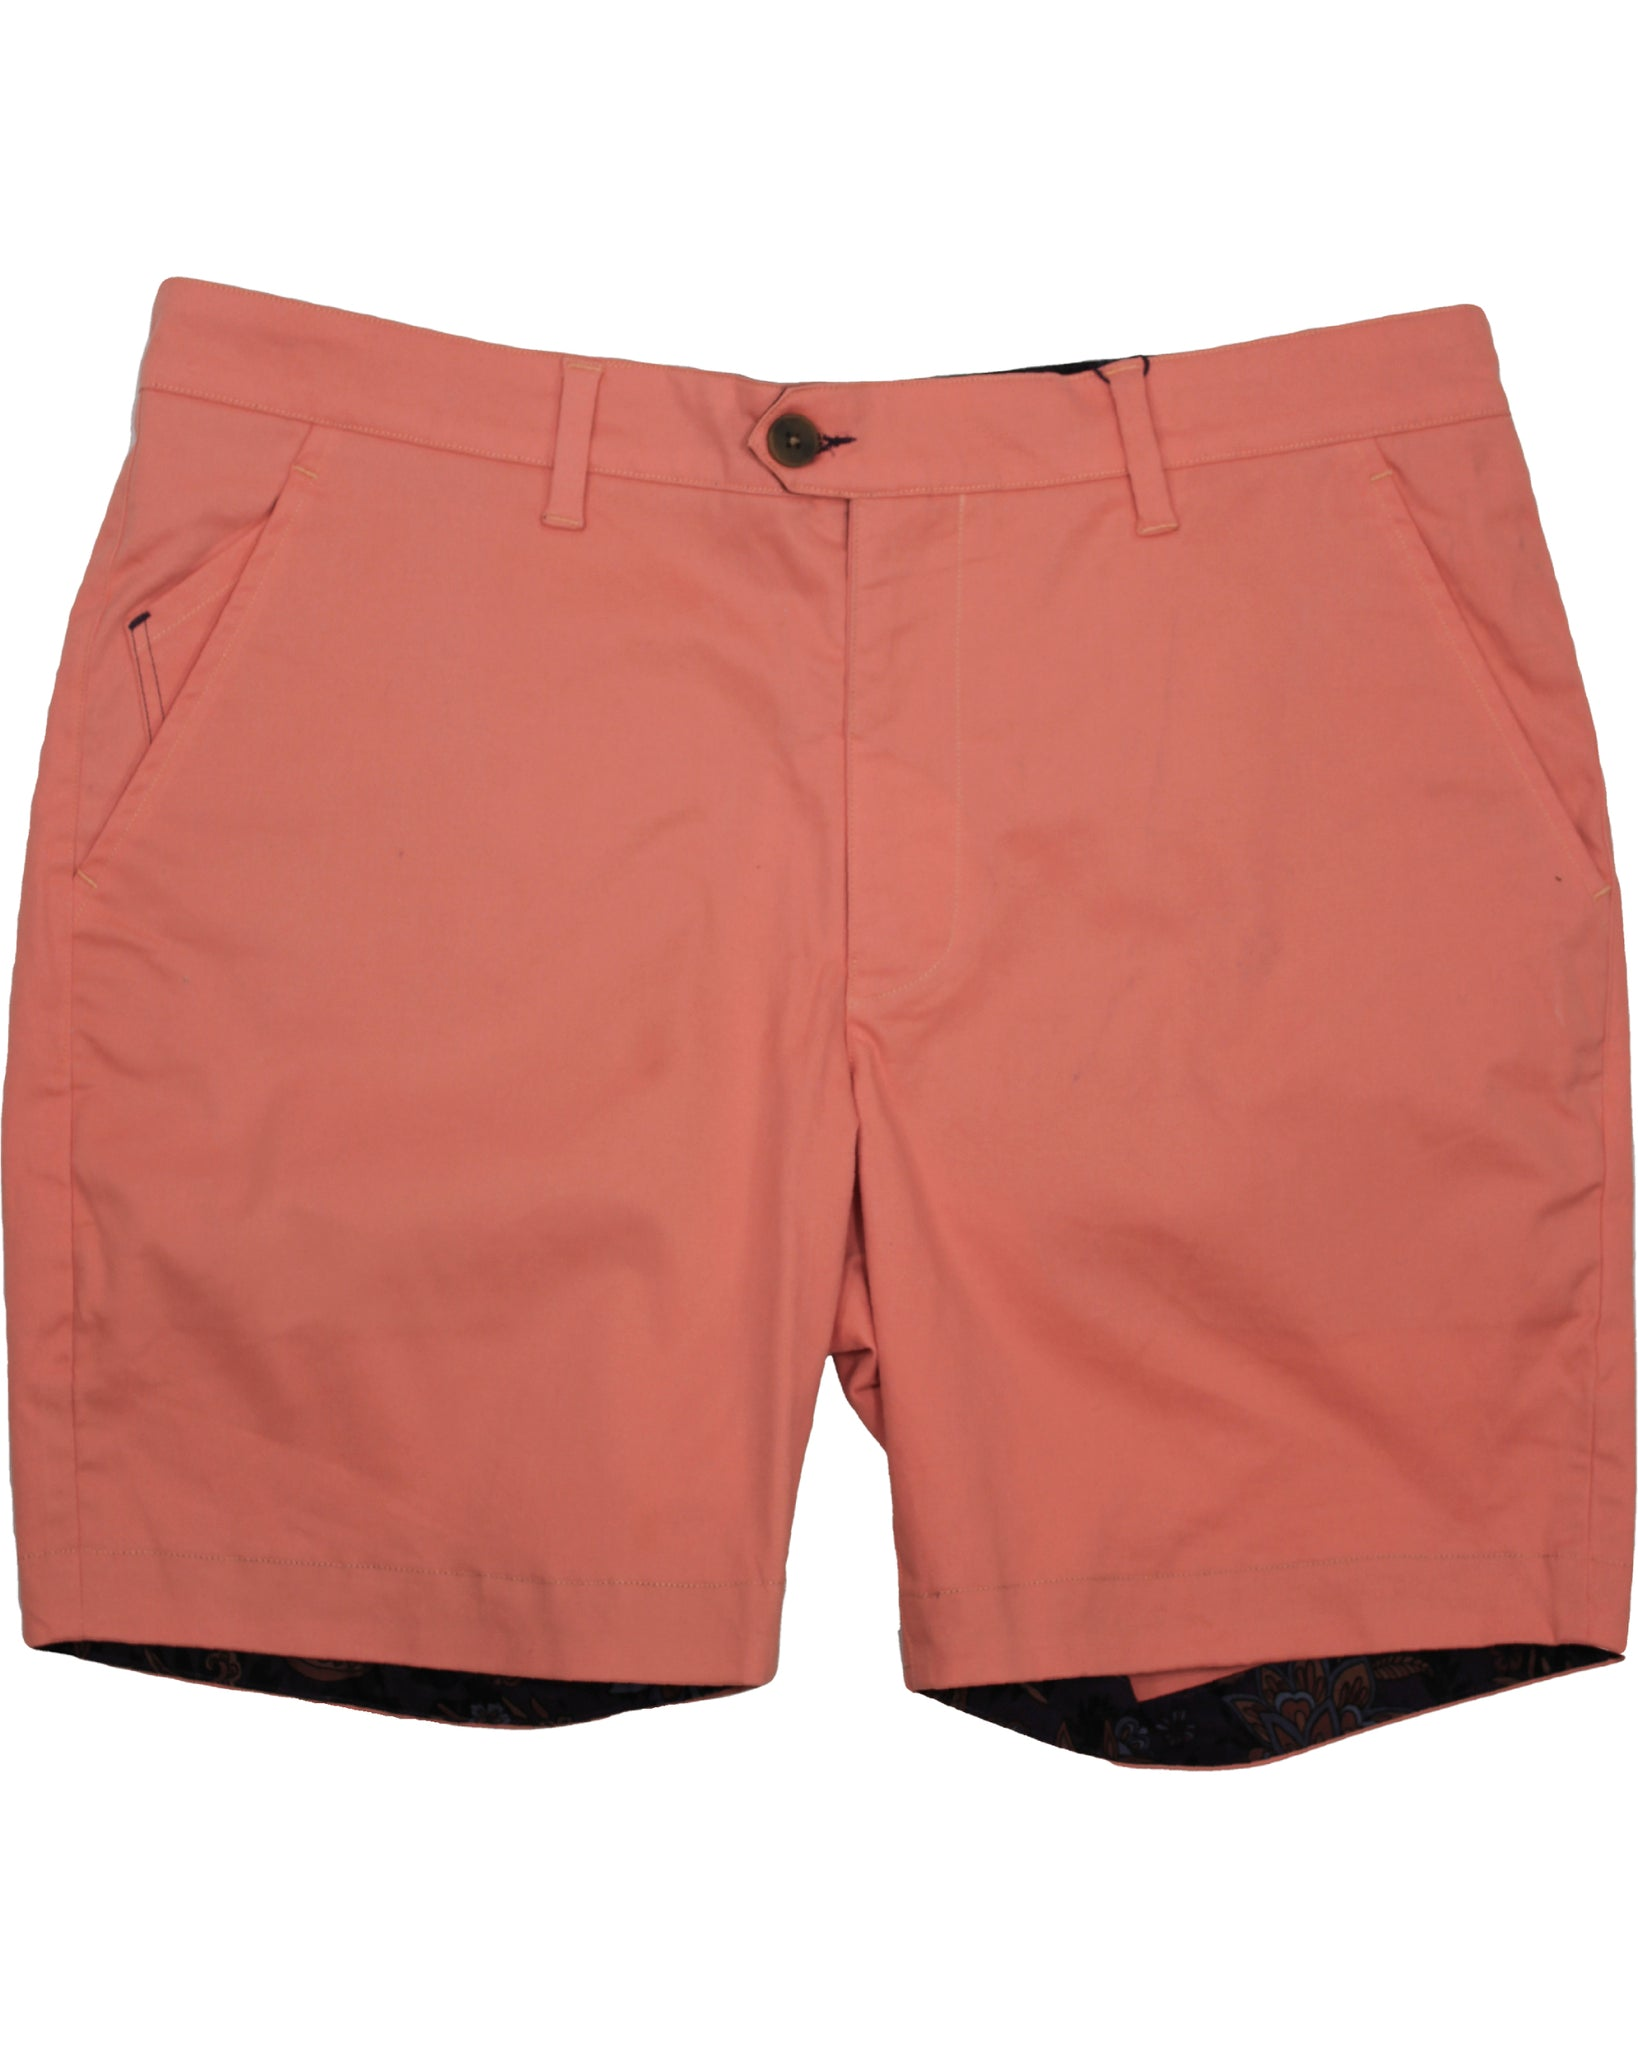 John Solid Short: Coral